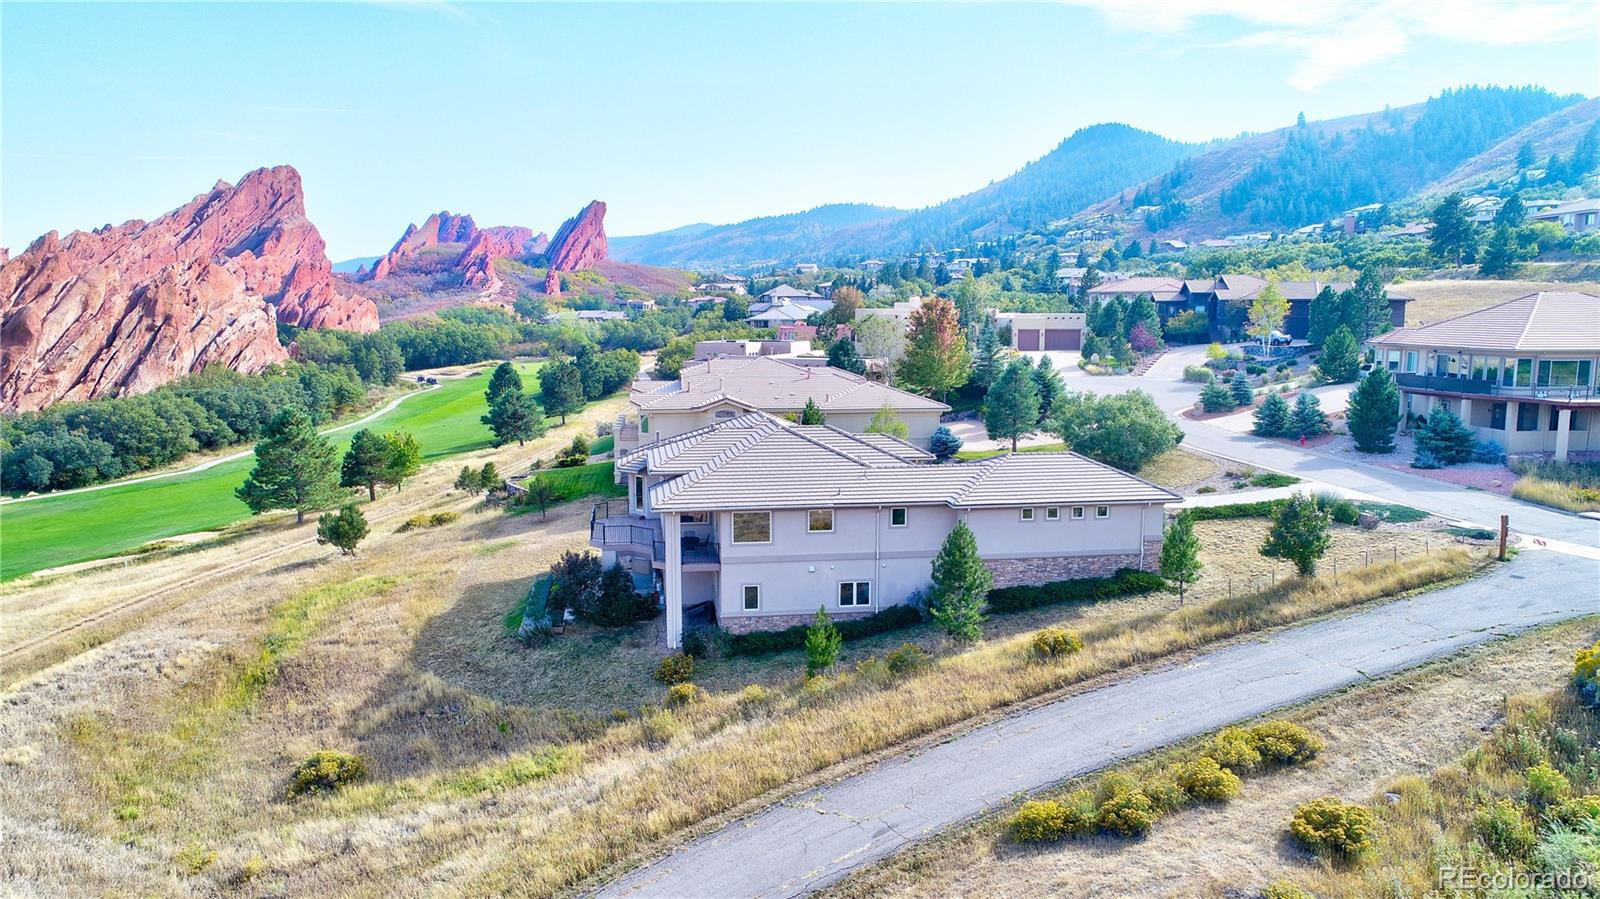 5840 Rain Dance Trail Littleton Co 80125 Roxborough Park Colorado Group Realty